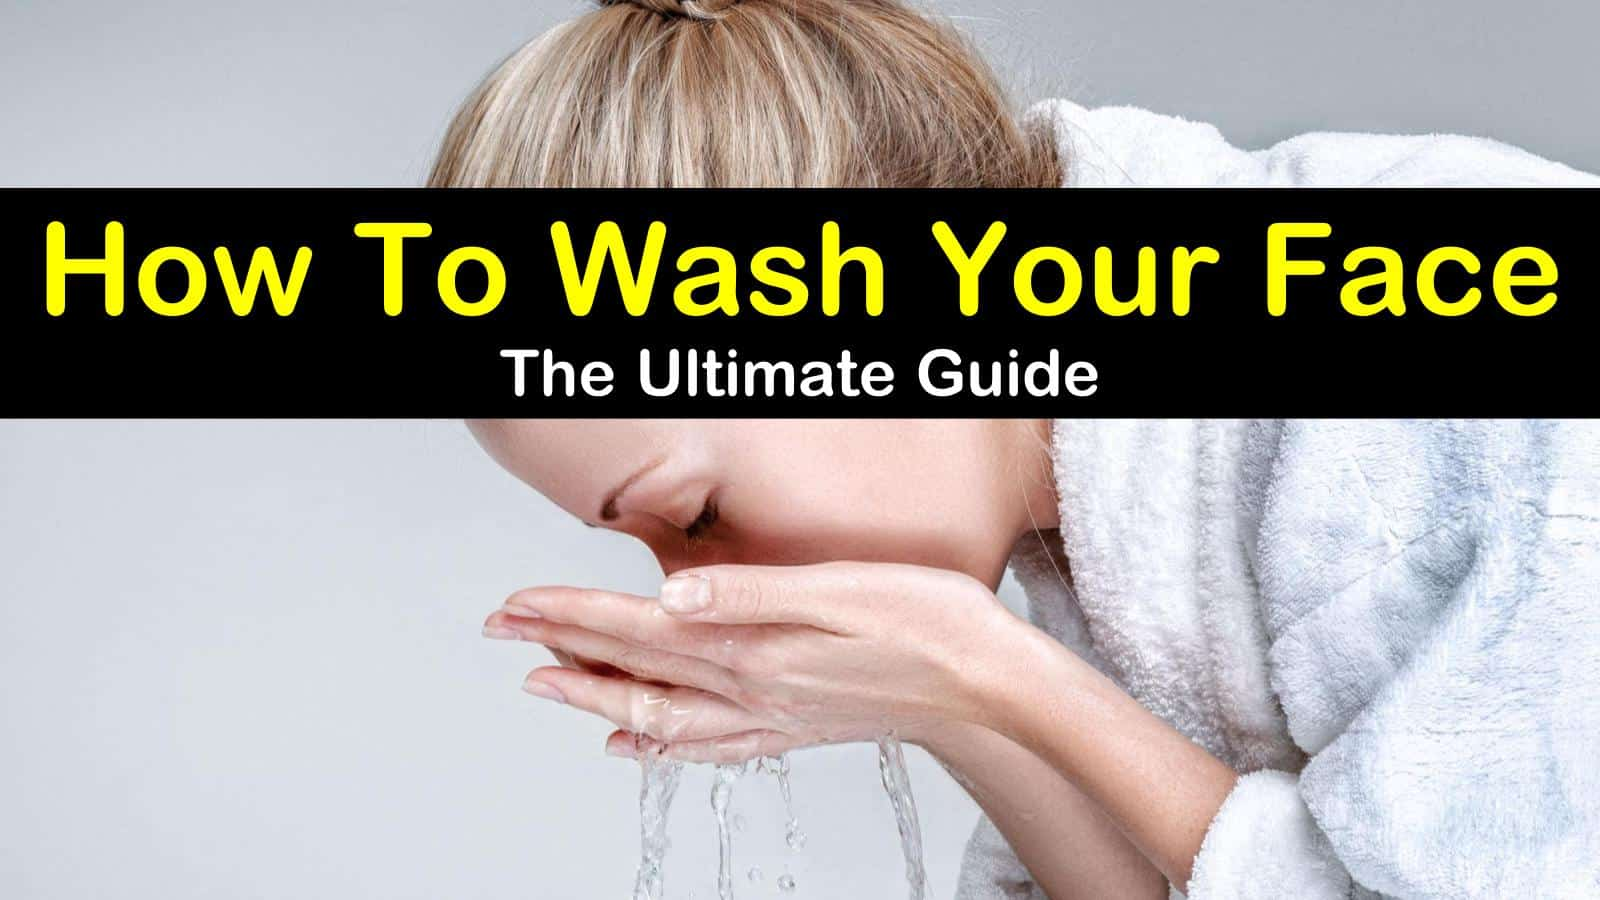 How to Wash Your Face - The Ultimate Guide titleimg1